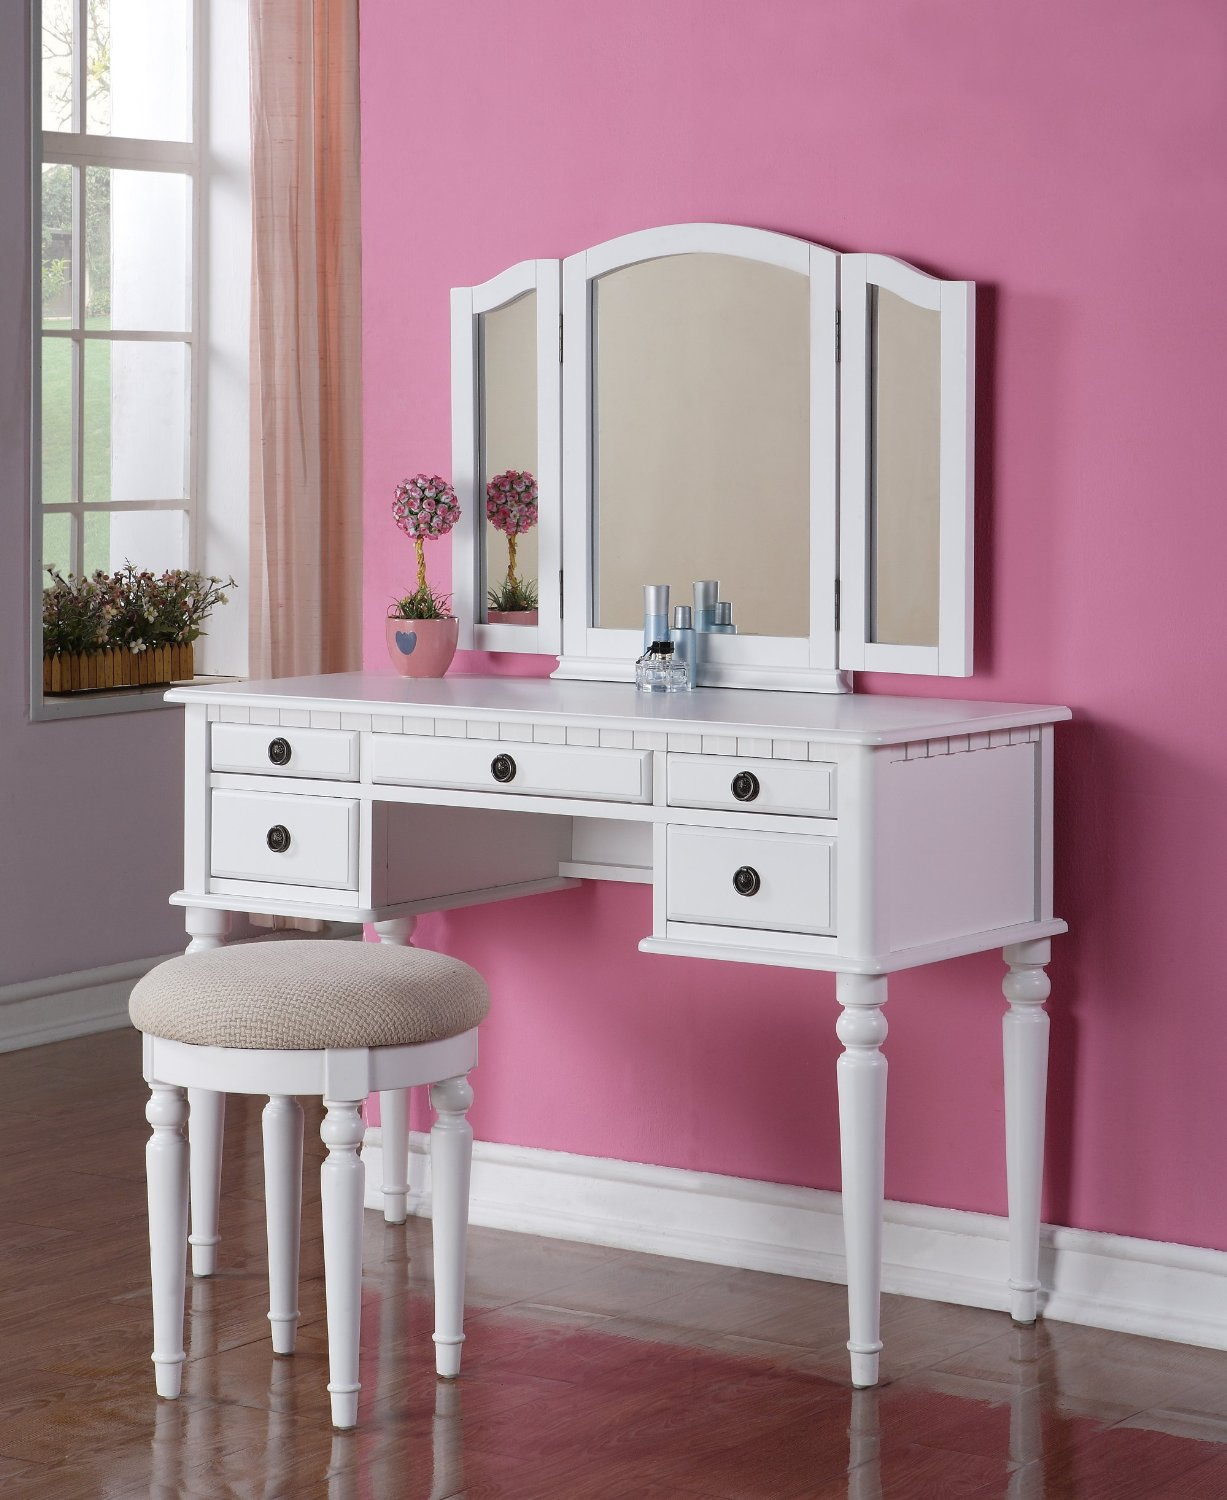 Picture of: Bedroom Vanity with Drawers Stool